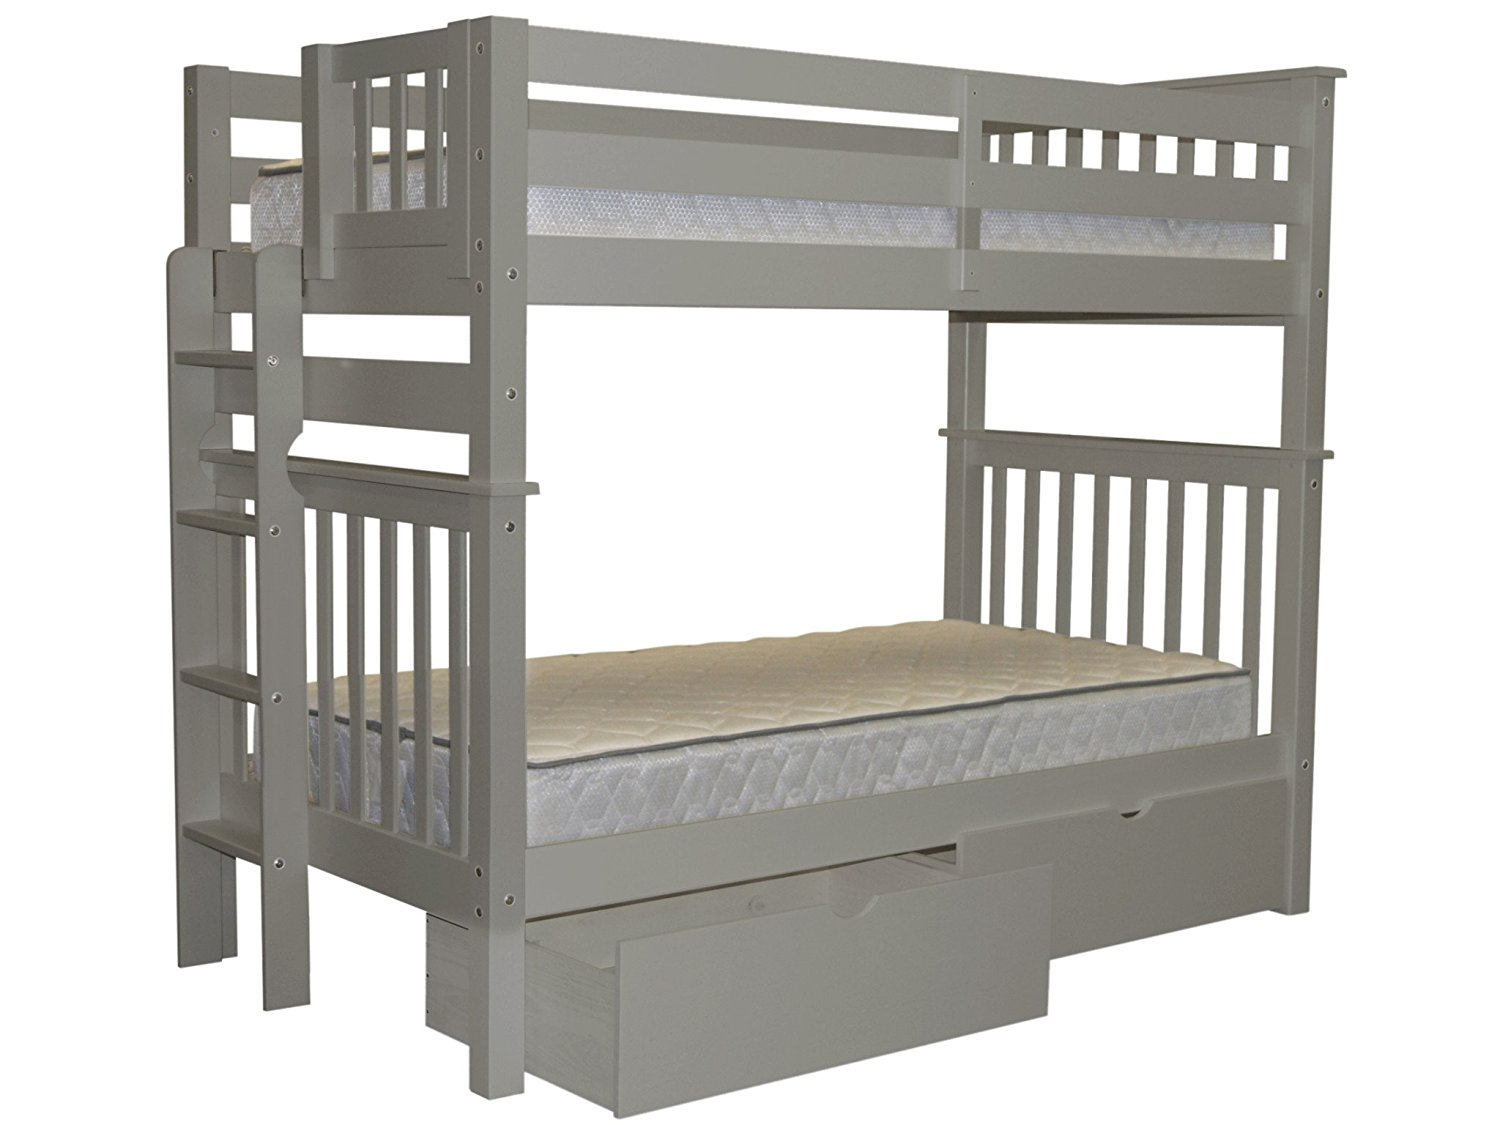 Bedz King Tall Bunk Beds Twin over Twin Mission Style with End Ladder and 2 Under Bed Drawers, Gray